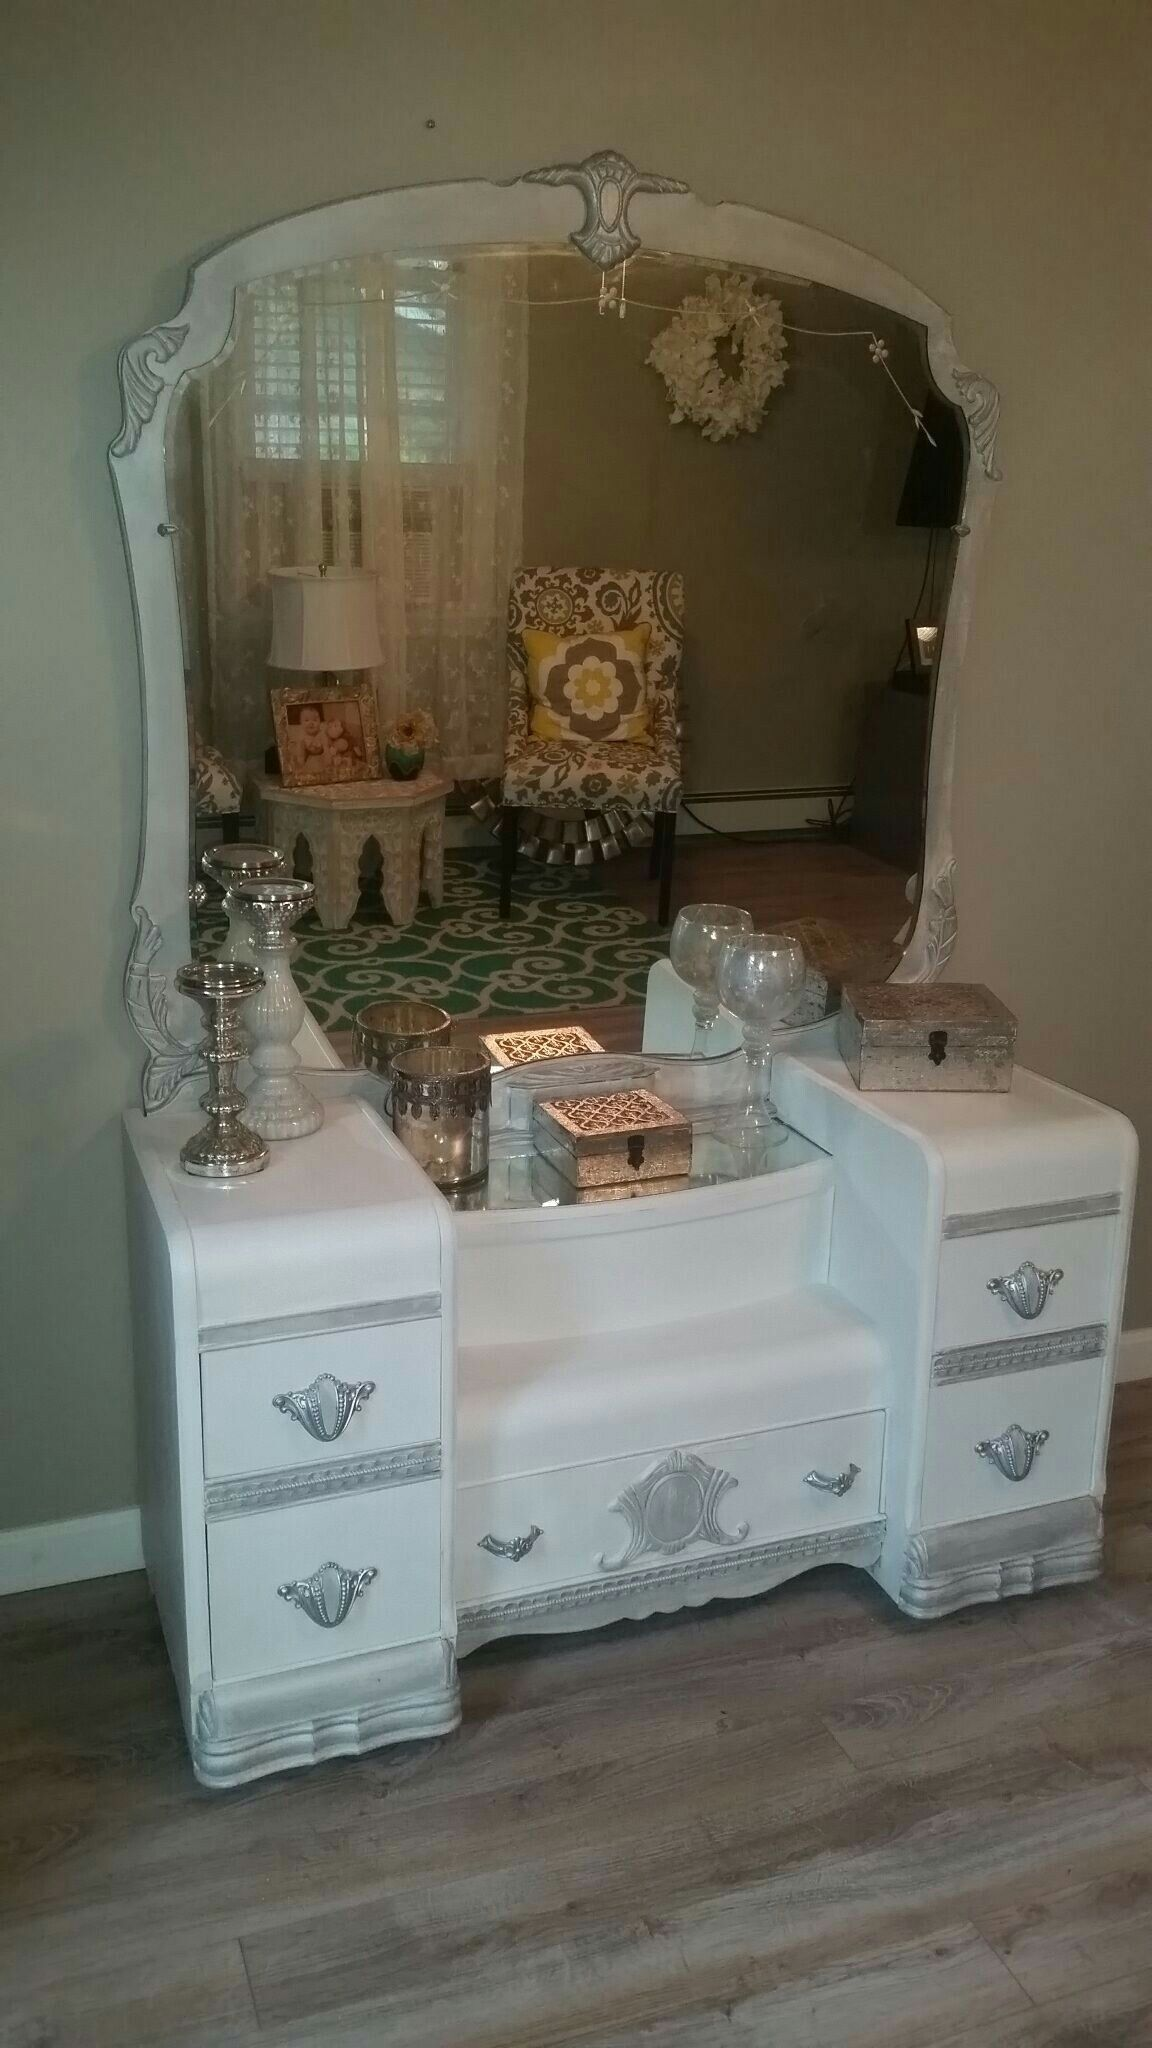 Vintage waterfall vanity and mirror. I finished this in